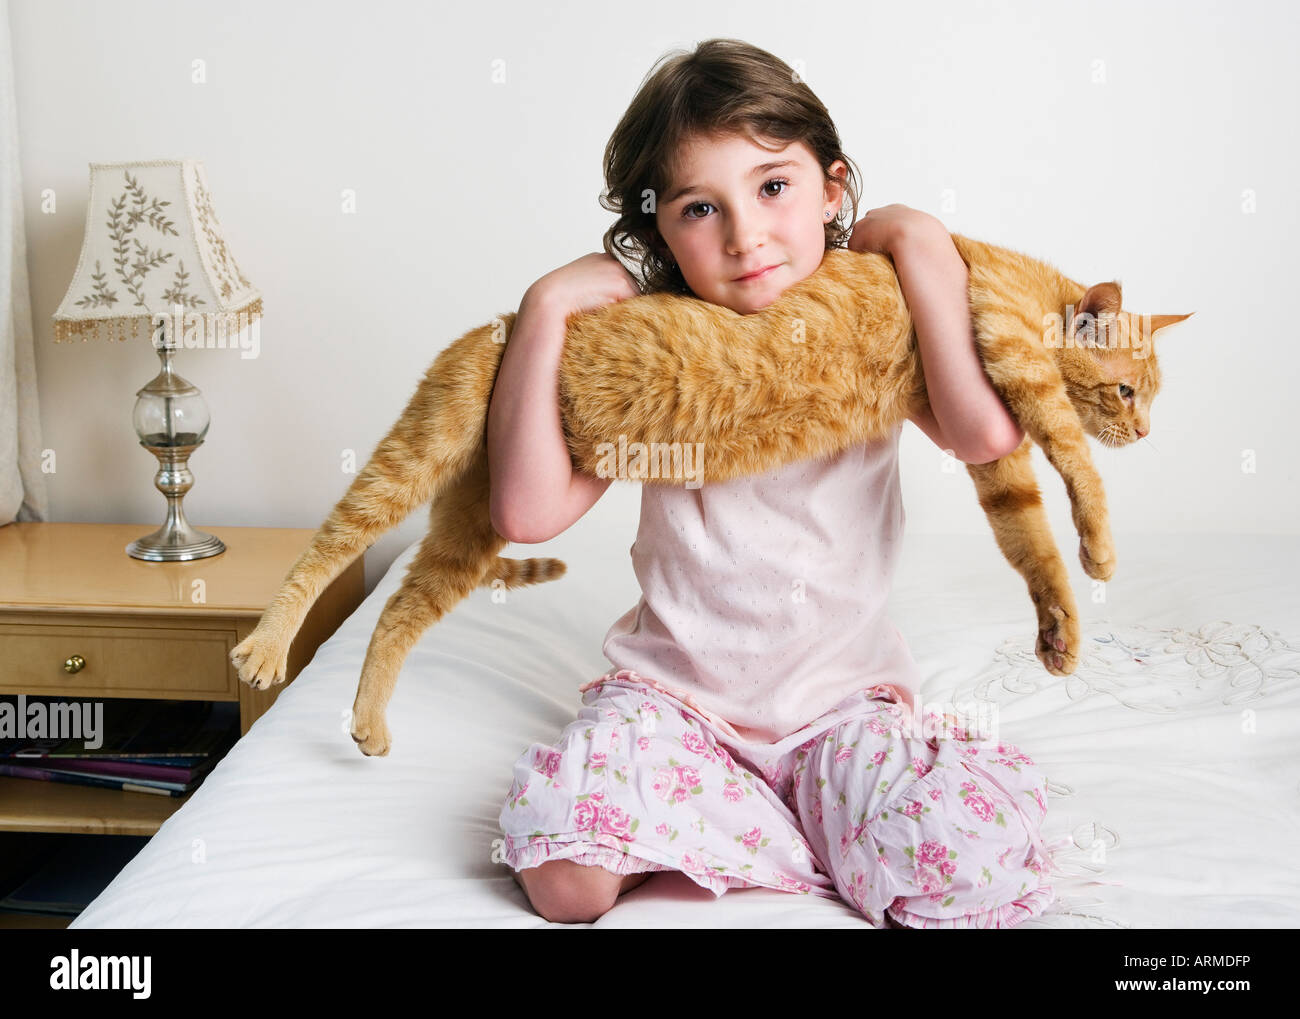 Girl holding cat in arms Photo Stock